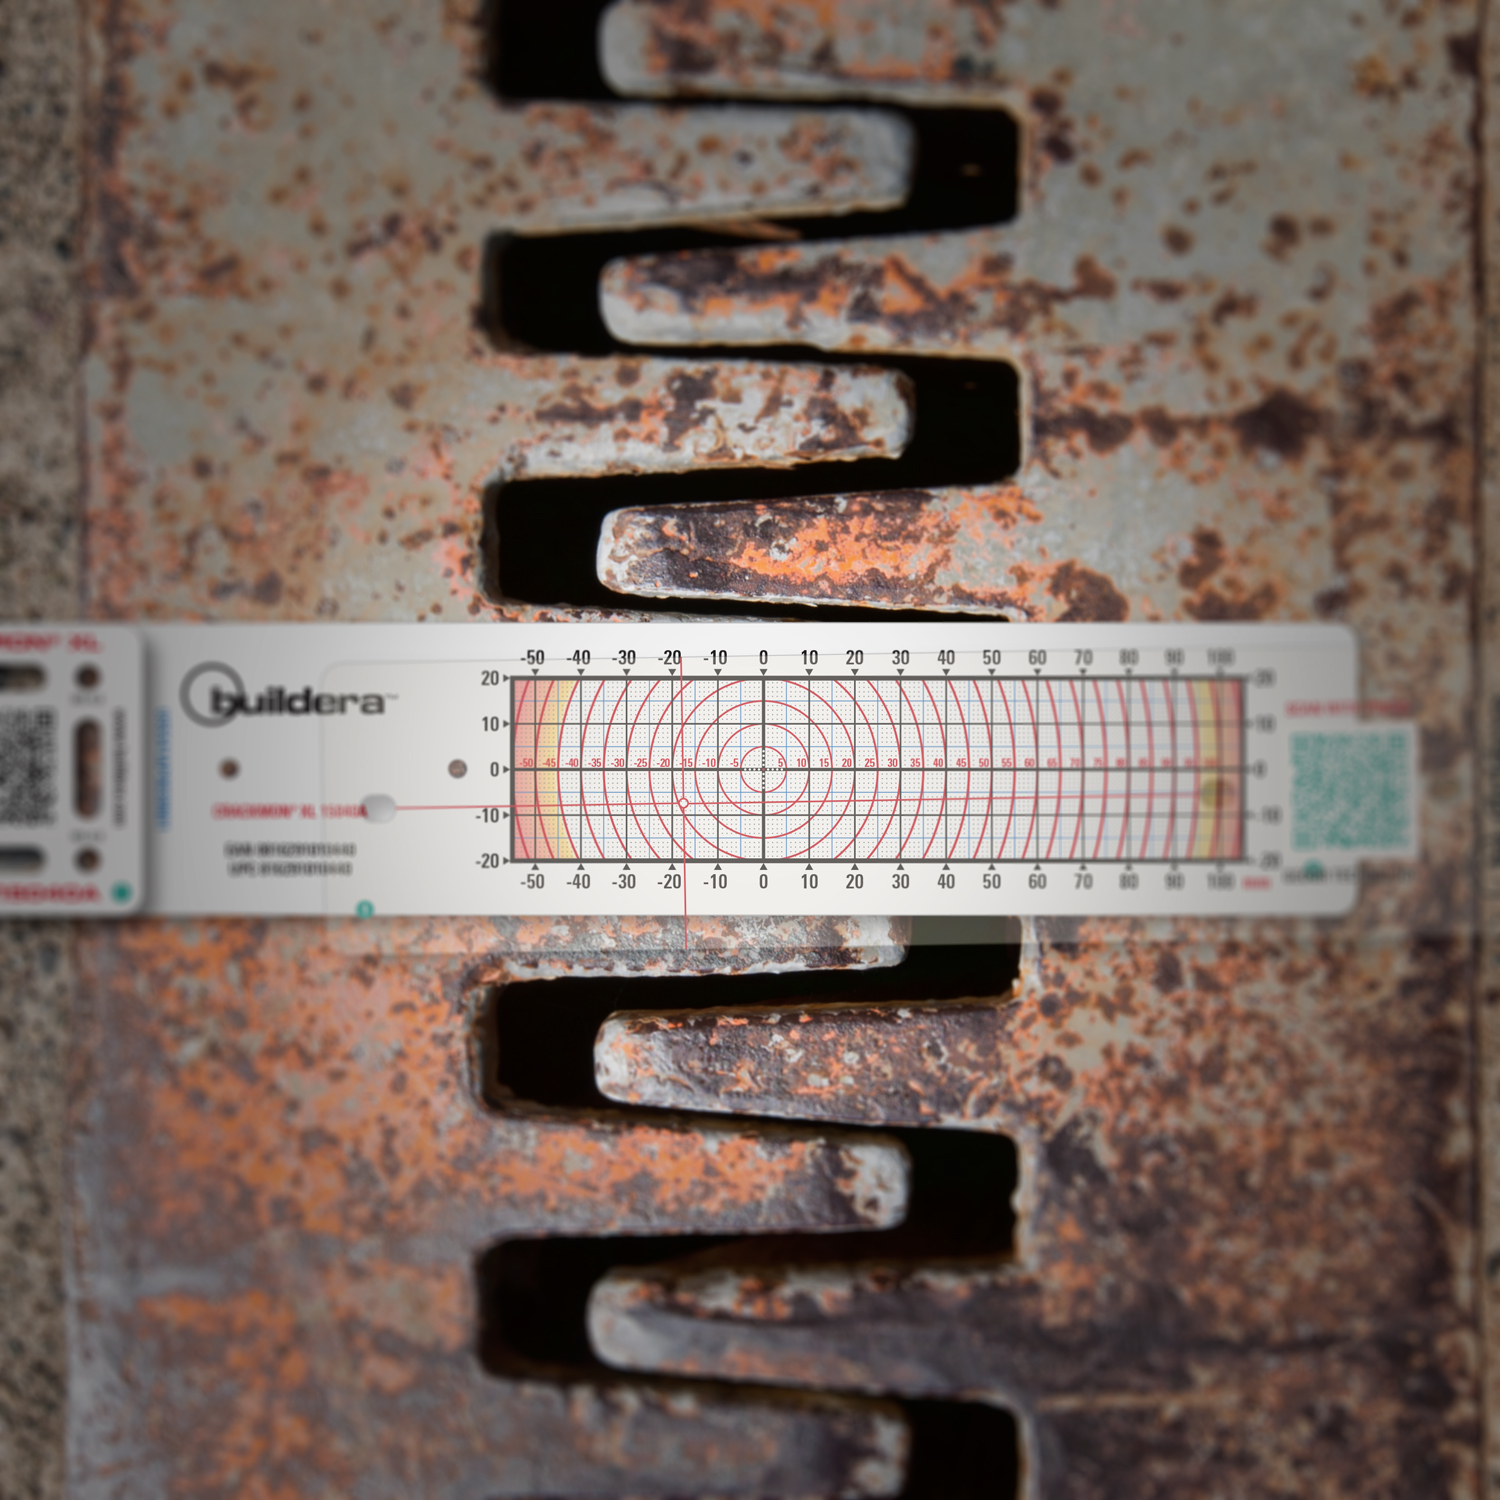 CRACKMON XL 15040A measuring expansion-joint expansion and contraction vs. time and temperature